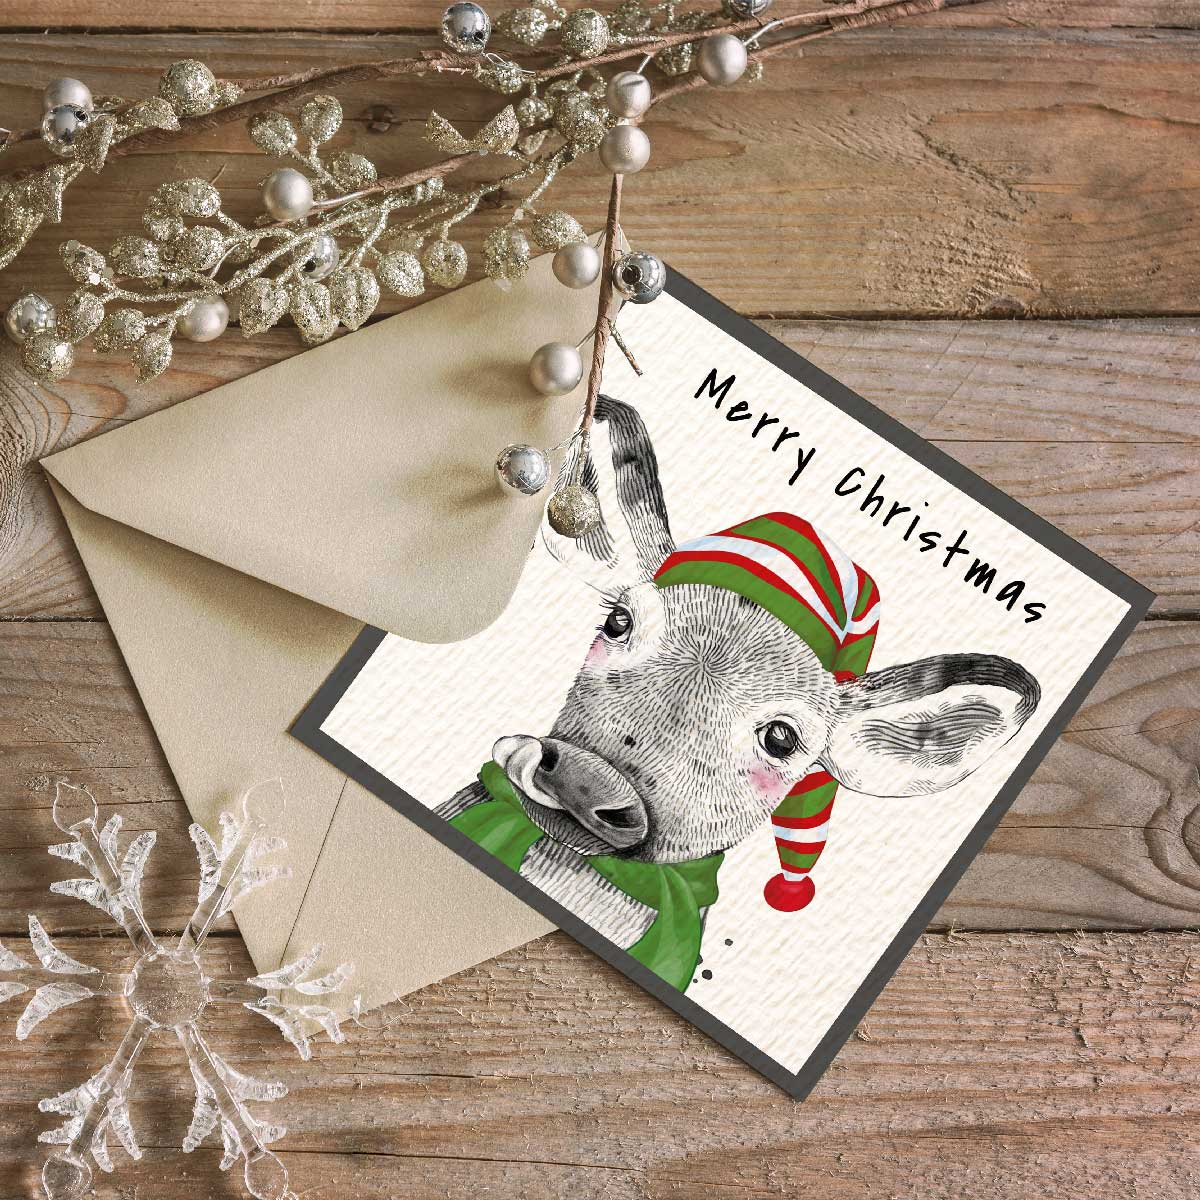 Festive Cow Christmas Card